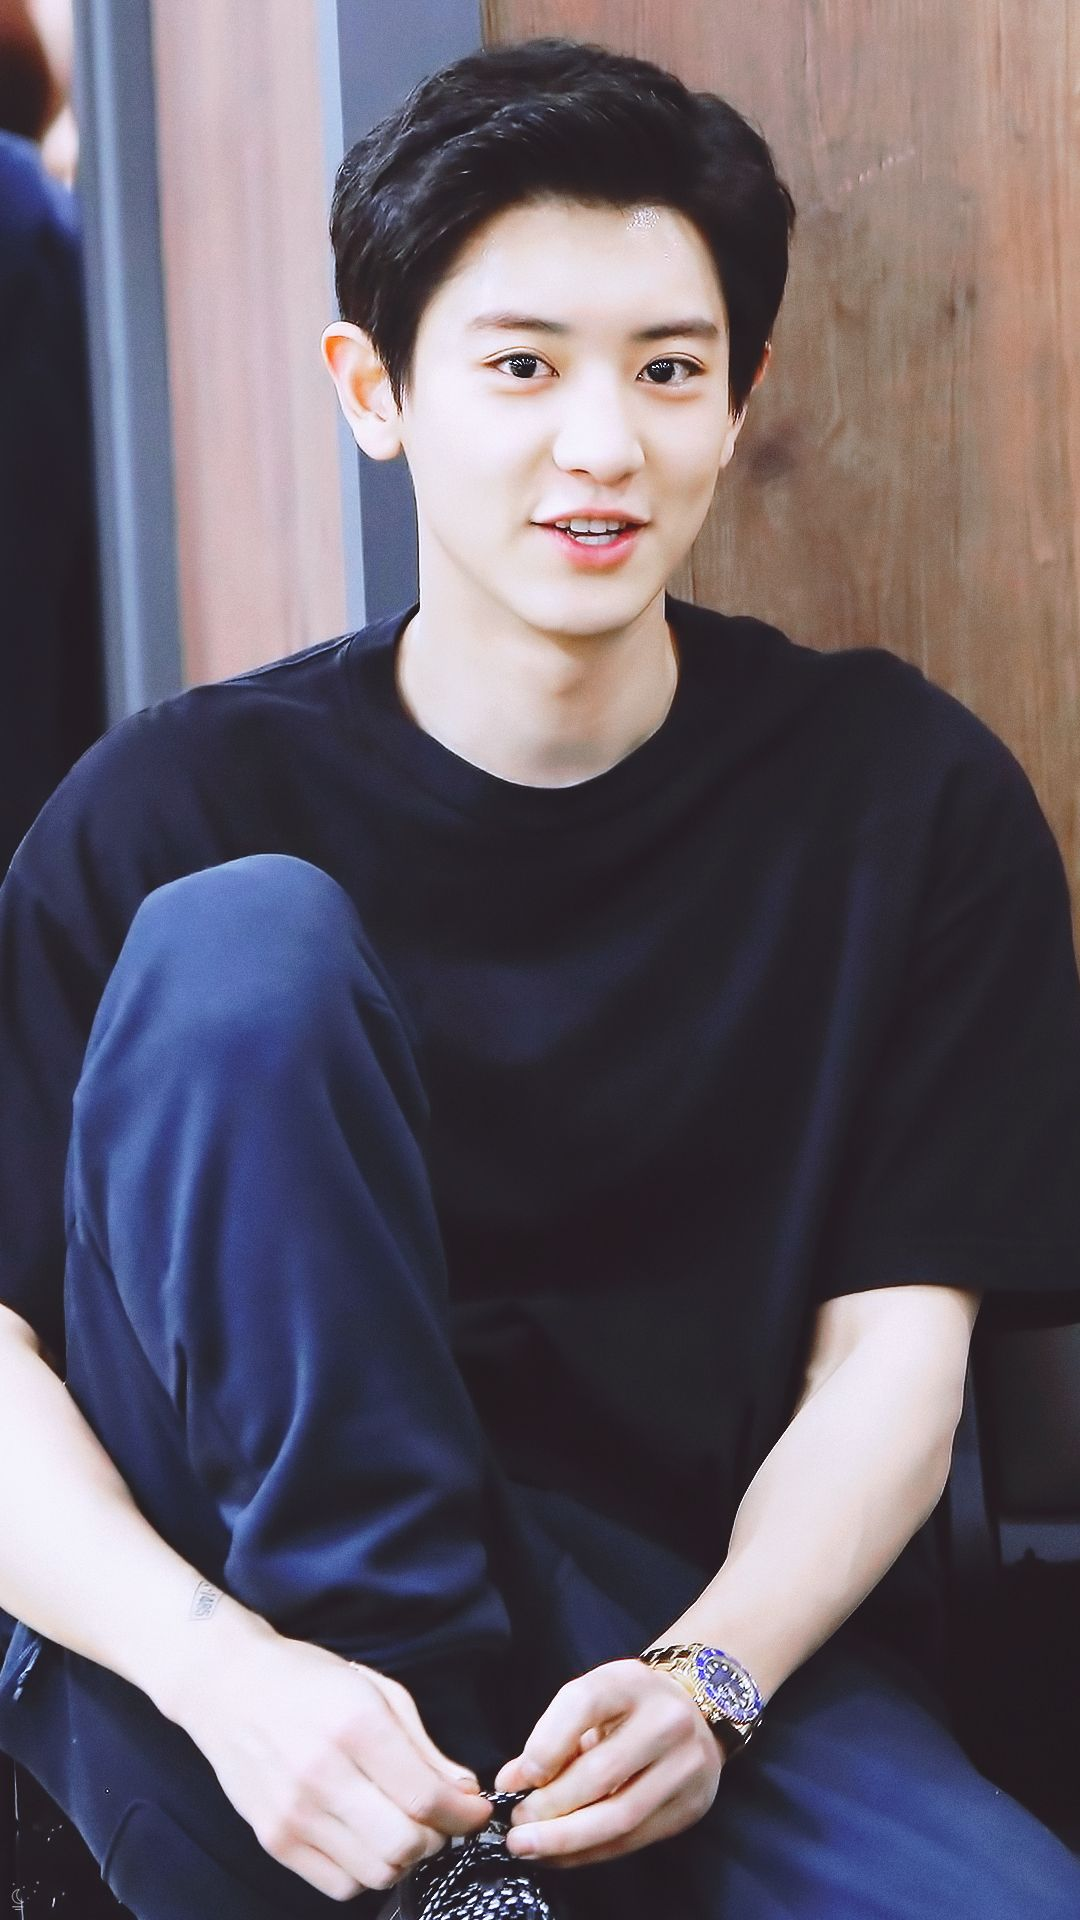 Pin by Gerrrry on EXO | Pinterest | Chanyeol, Exo and Park chanyeol